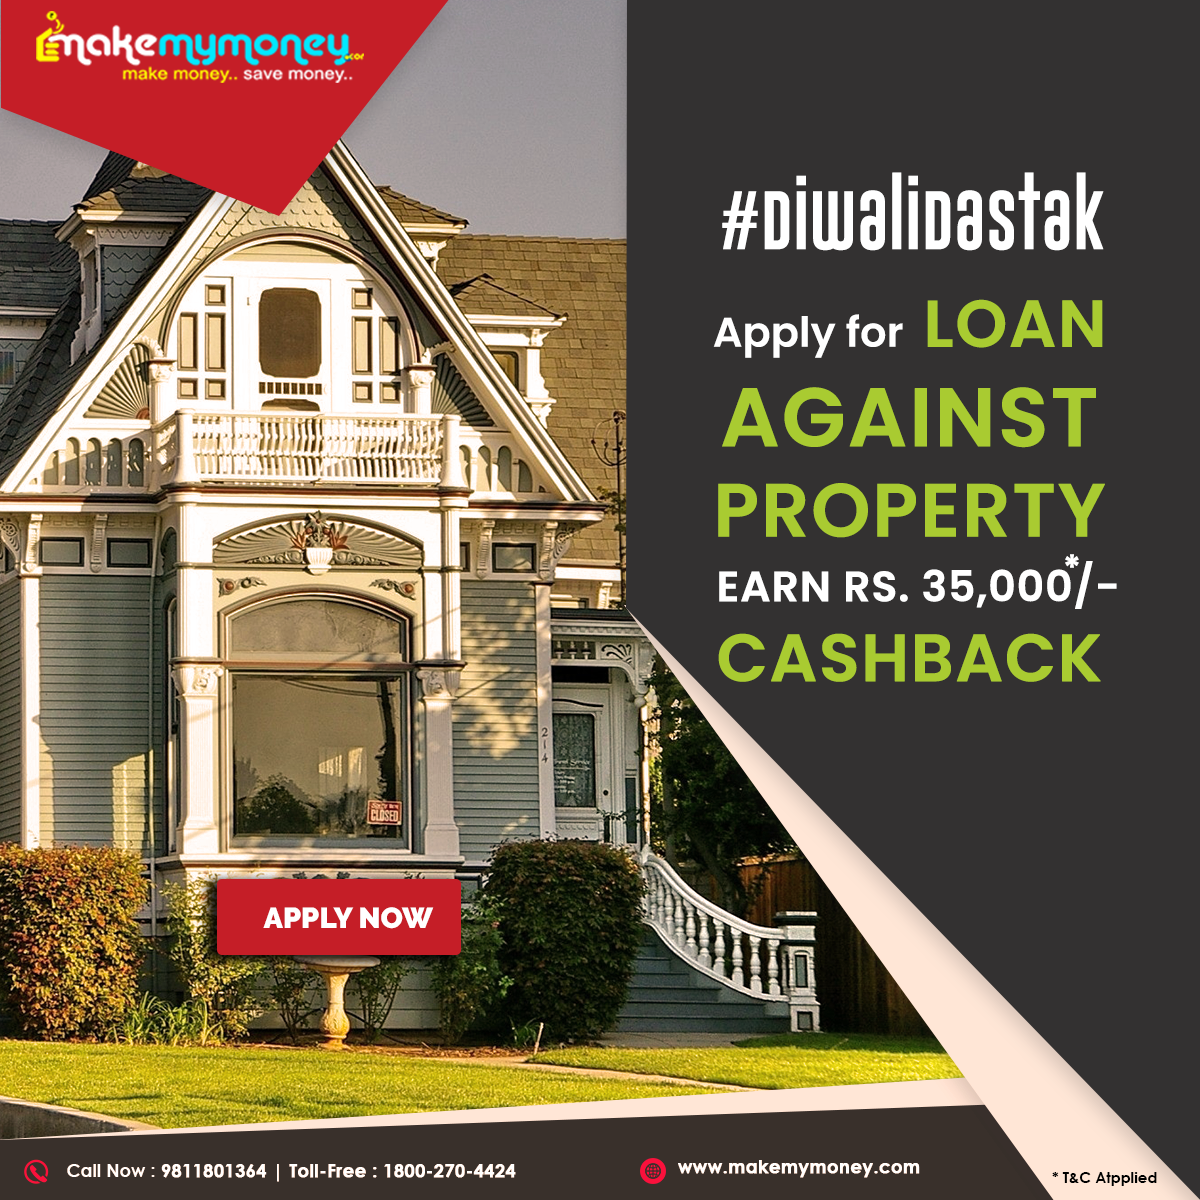 Apply For Loan Against Property And Earn Rs 35000 Cashback Apply Now Visit Www Makemymoney Com Diwalidastak Makemymoney Mmm Best Loans Mortgage Loans Loan